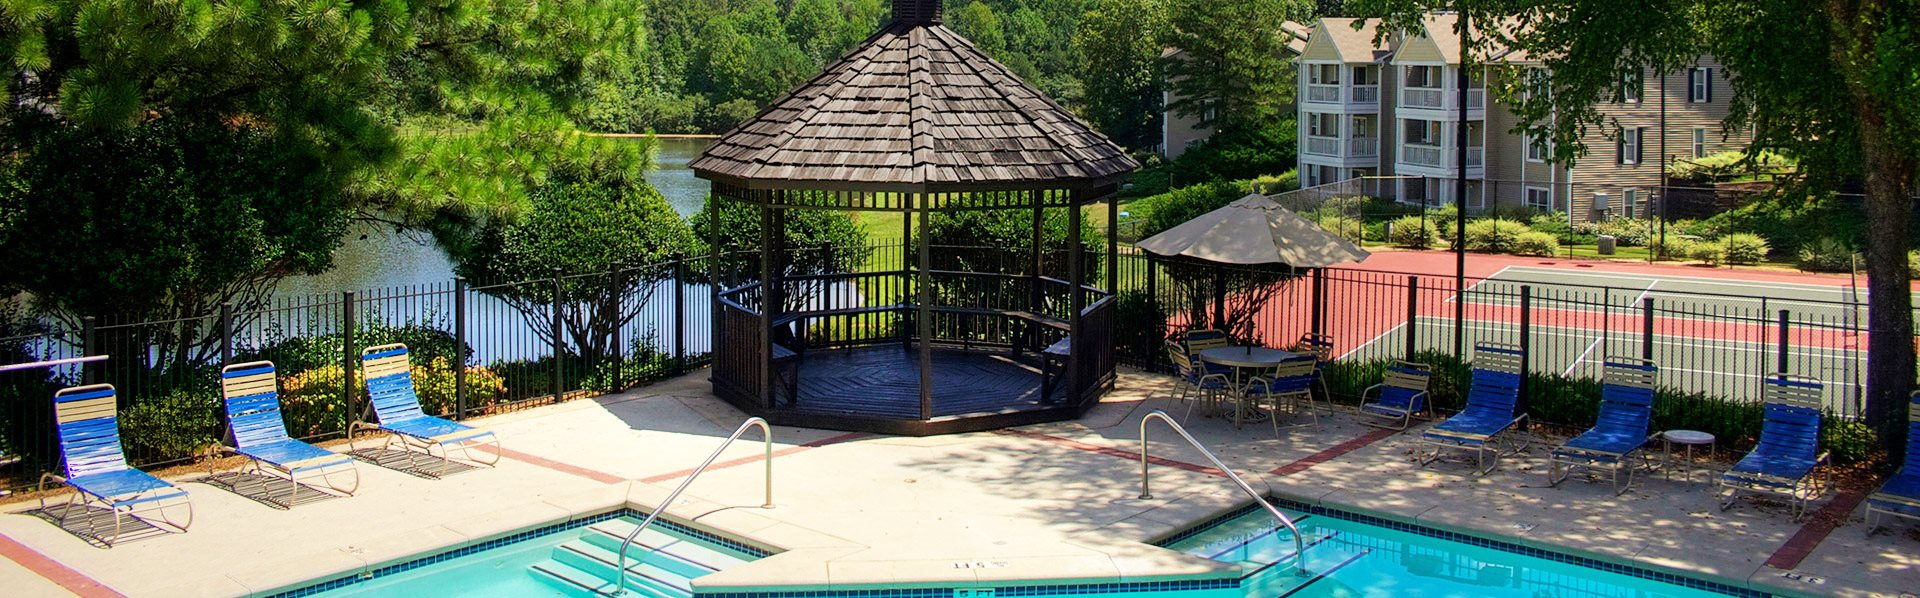 Arbor Place Apartments In Douglasville GA Sparkling Pool Two Tennis Courts And Views Of The Six Acre Lake At Lakeside